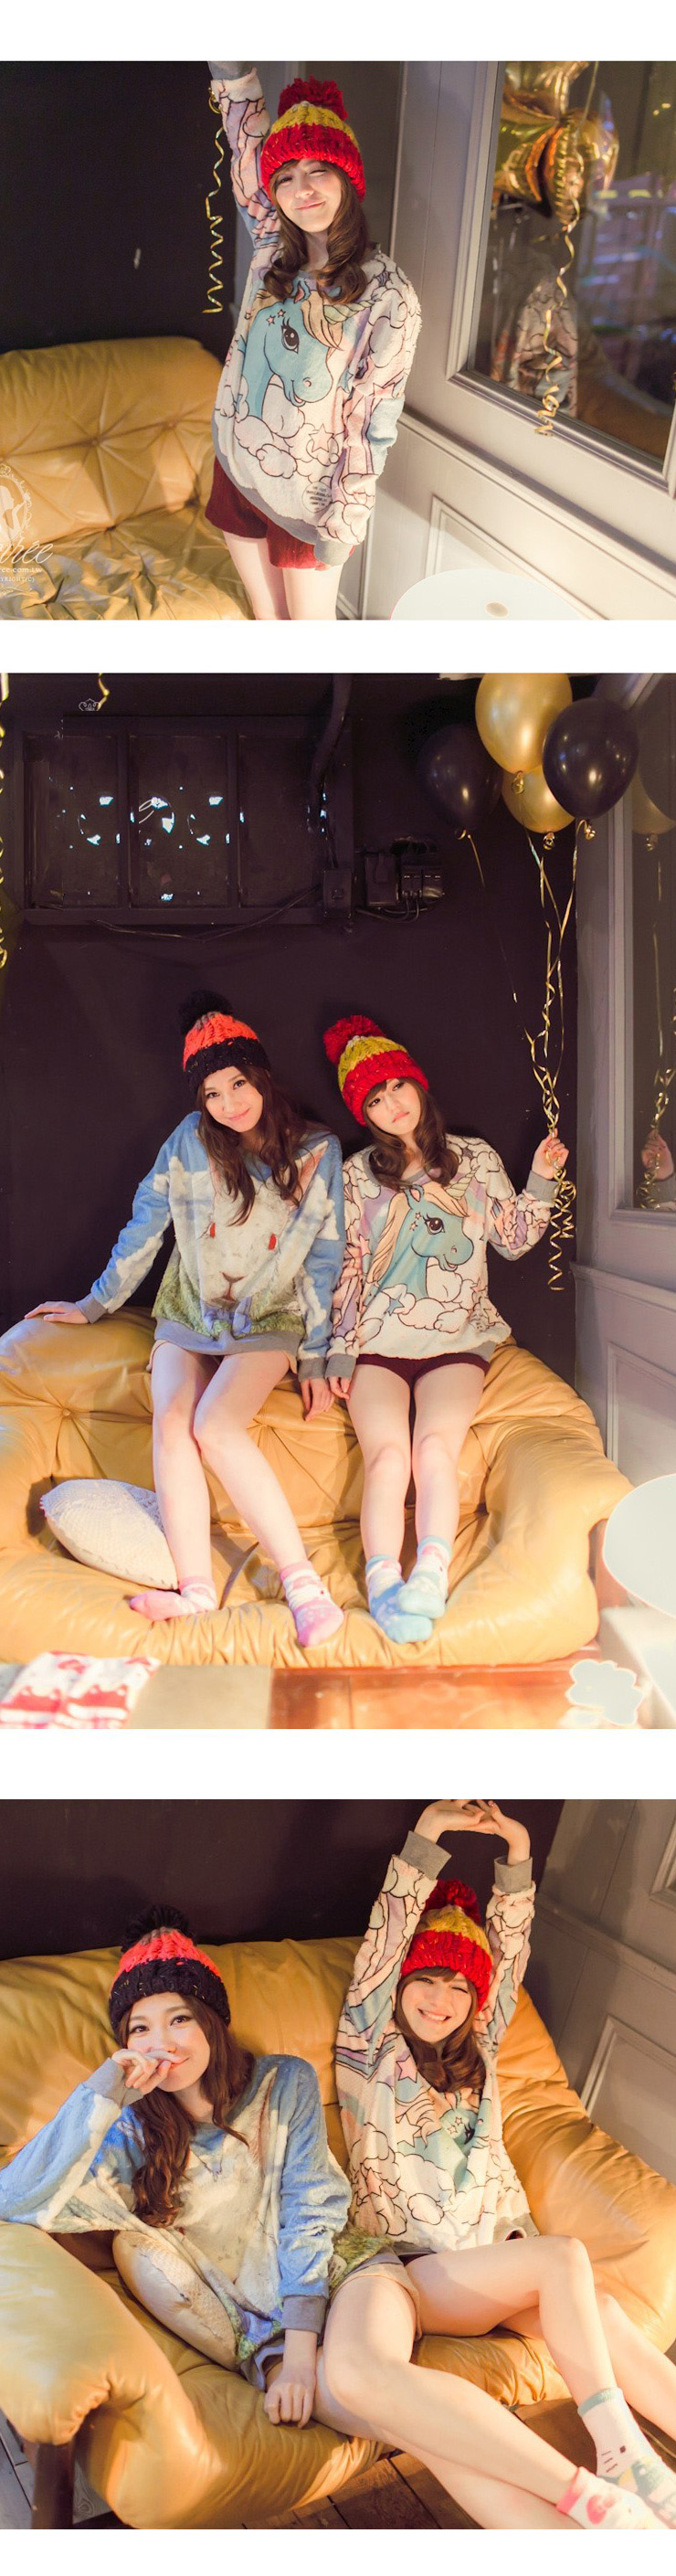 pony_sweater_sudadera_wh004_cardigans_and_sweaters_11.jpg